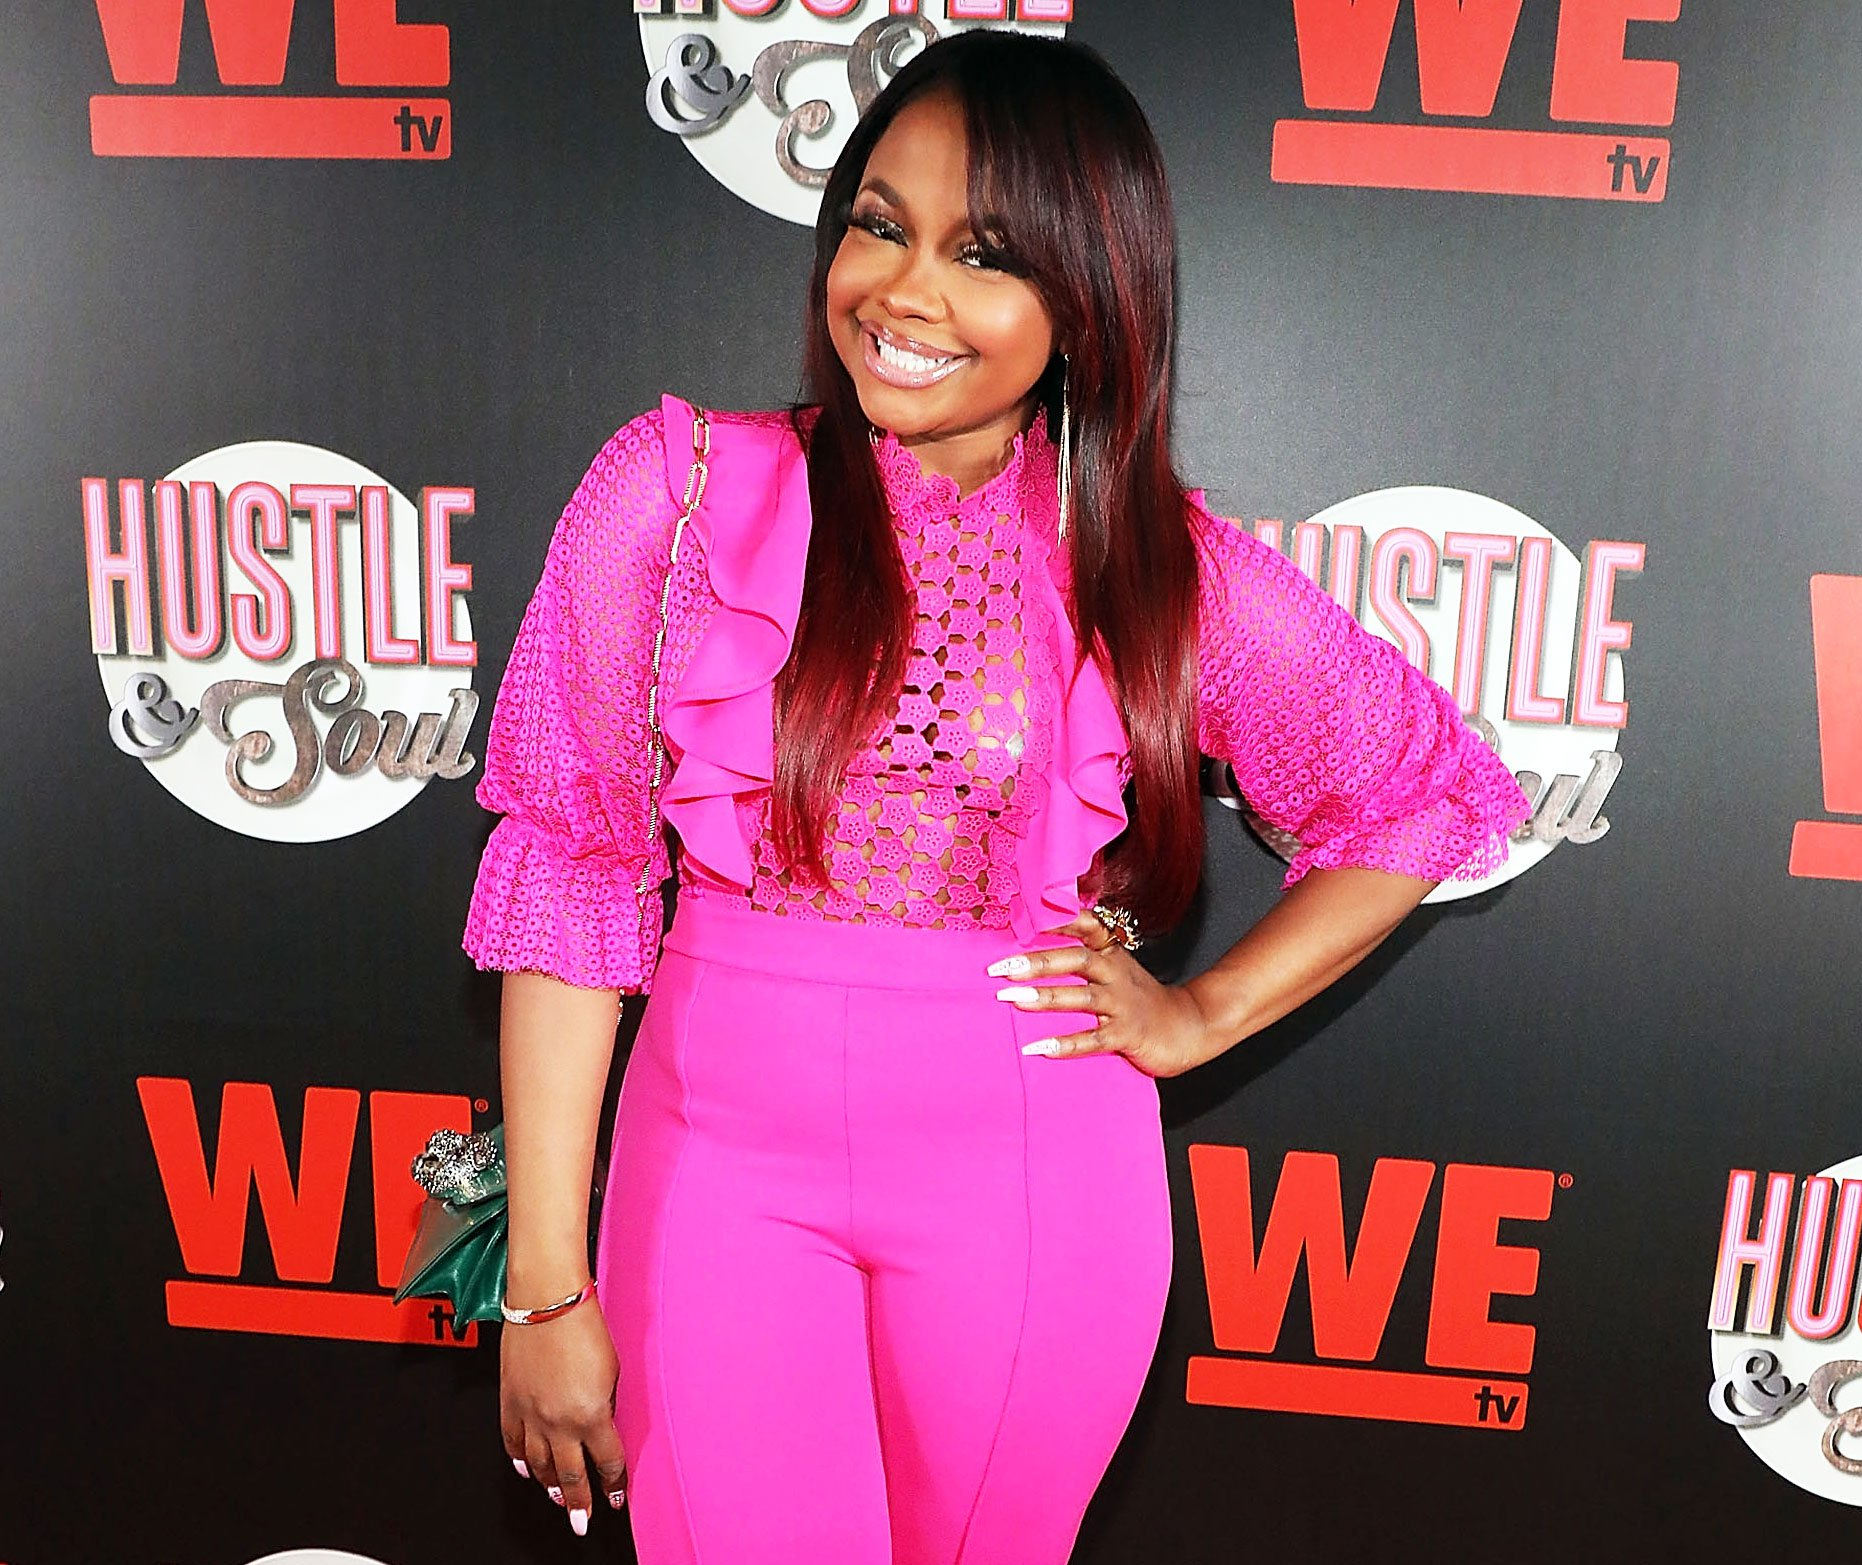 Phaedra Parks Looks Gorgeous In The Marriage Boot Camp Season Finale On WeTV